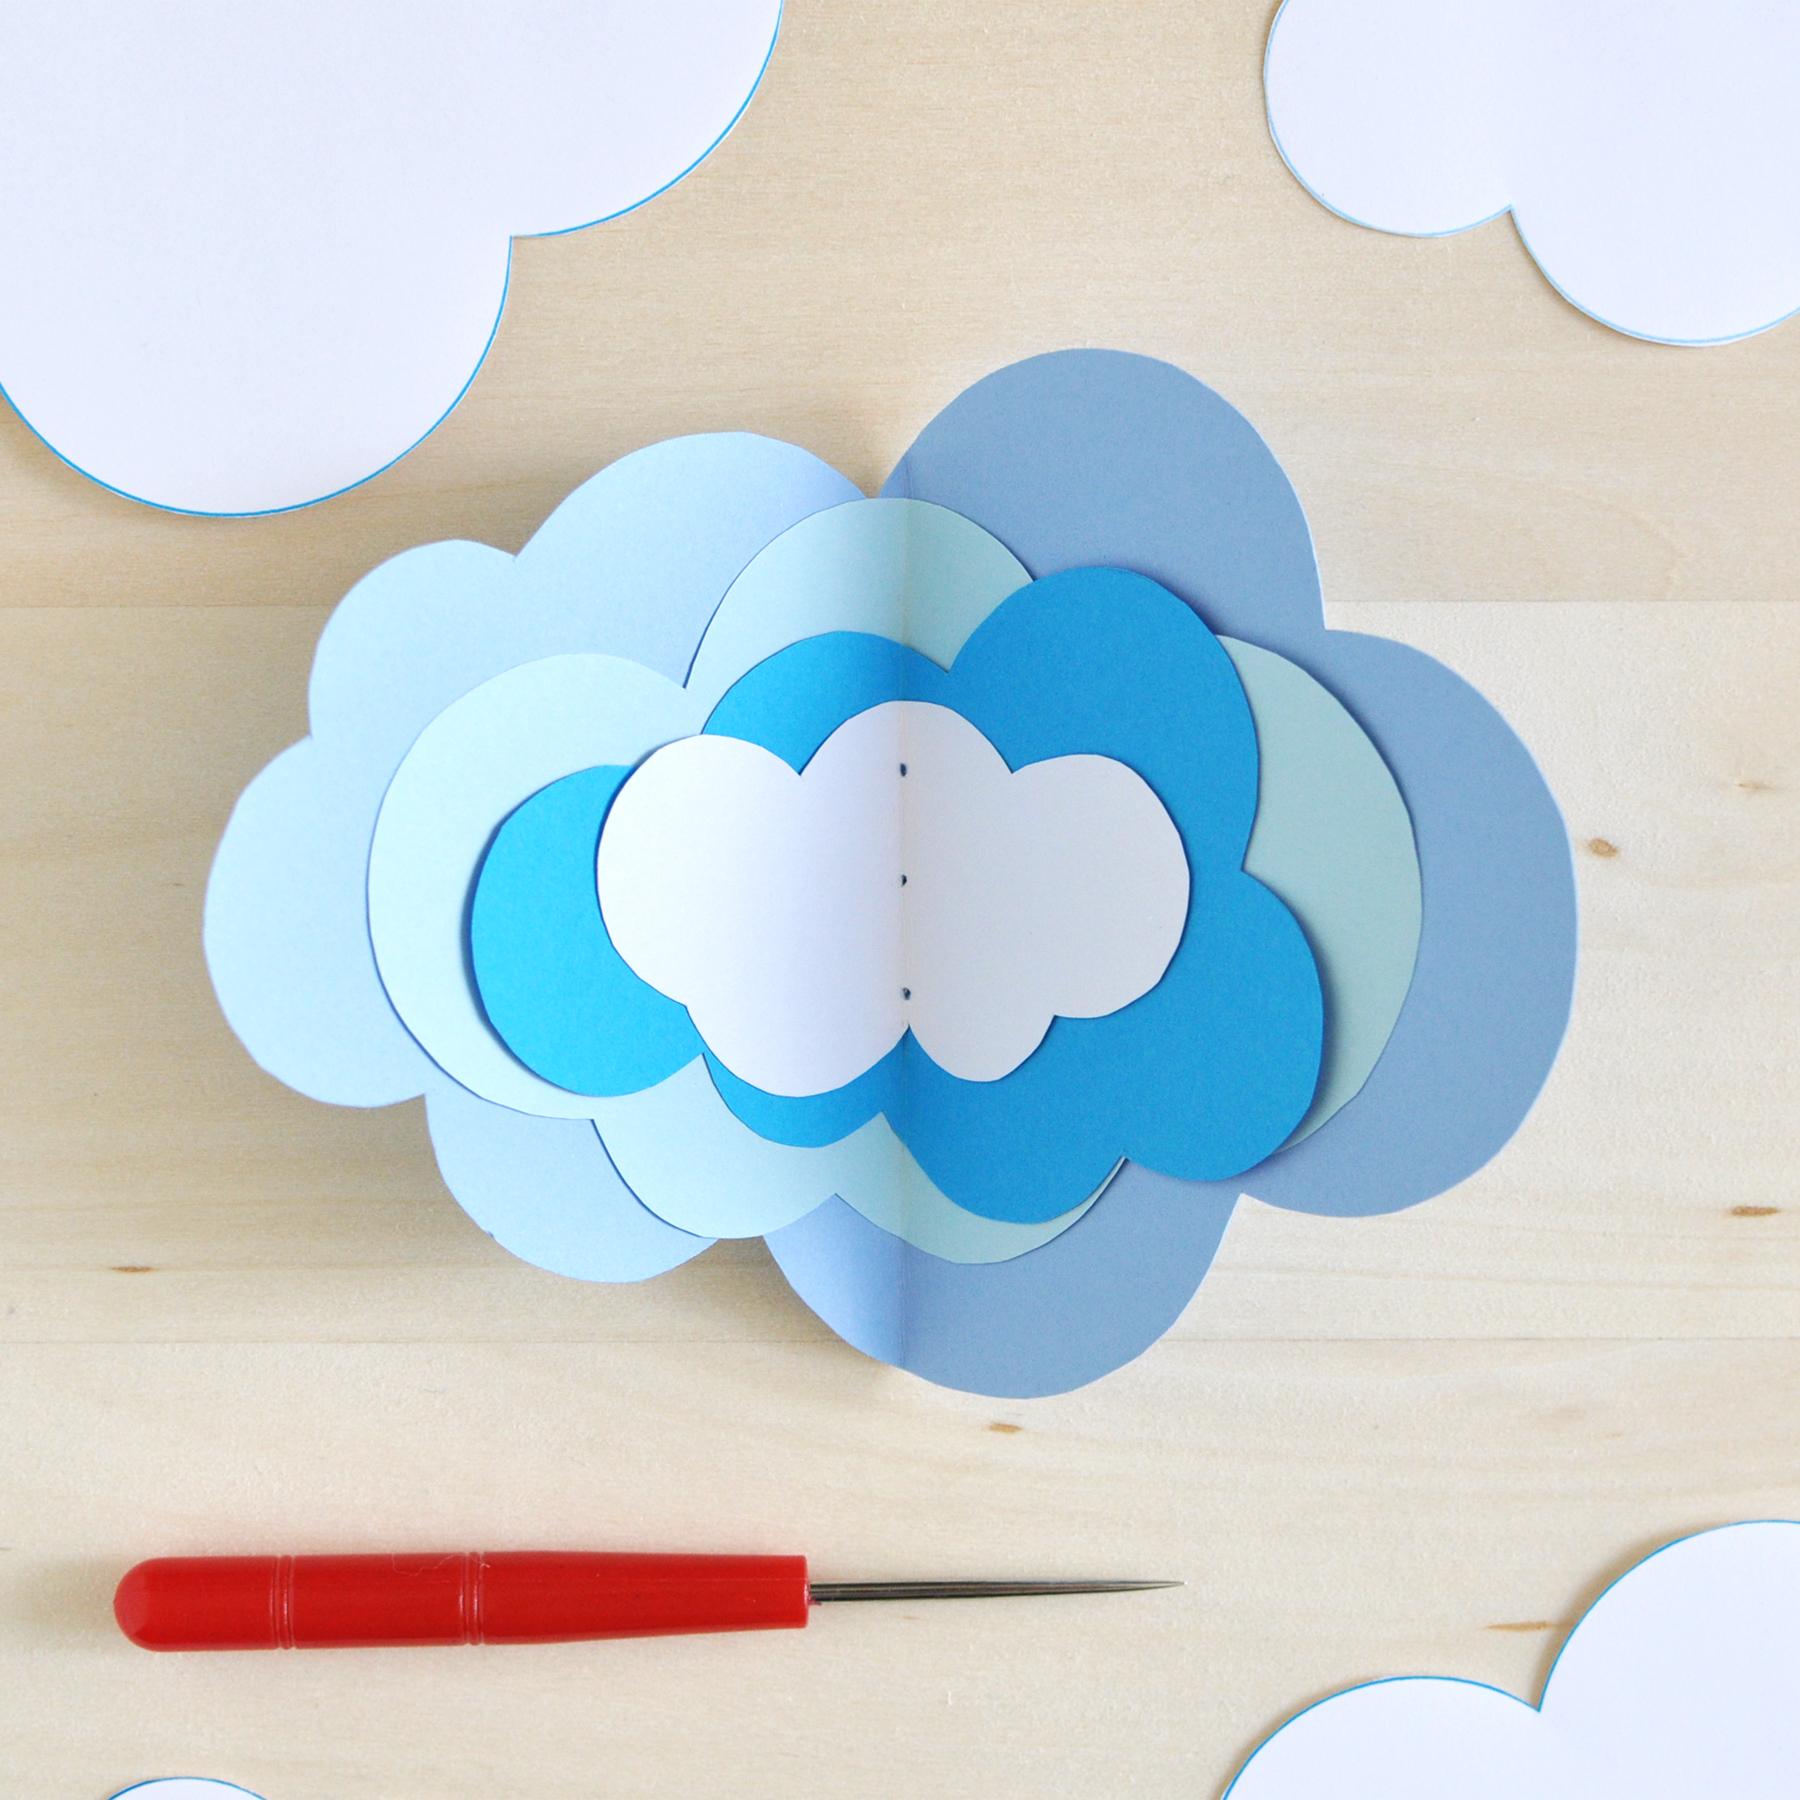 Make-Your-Own-Mini-Cloud-Journal---Image7.jpg